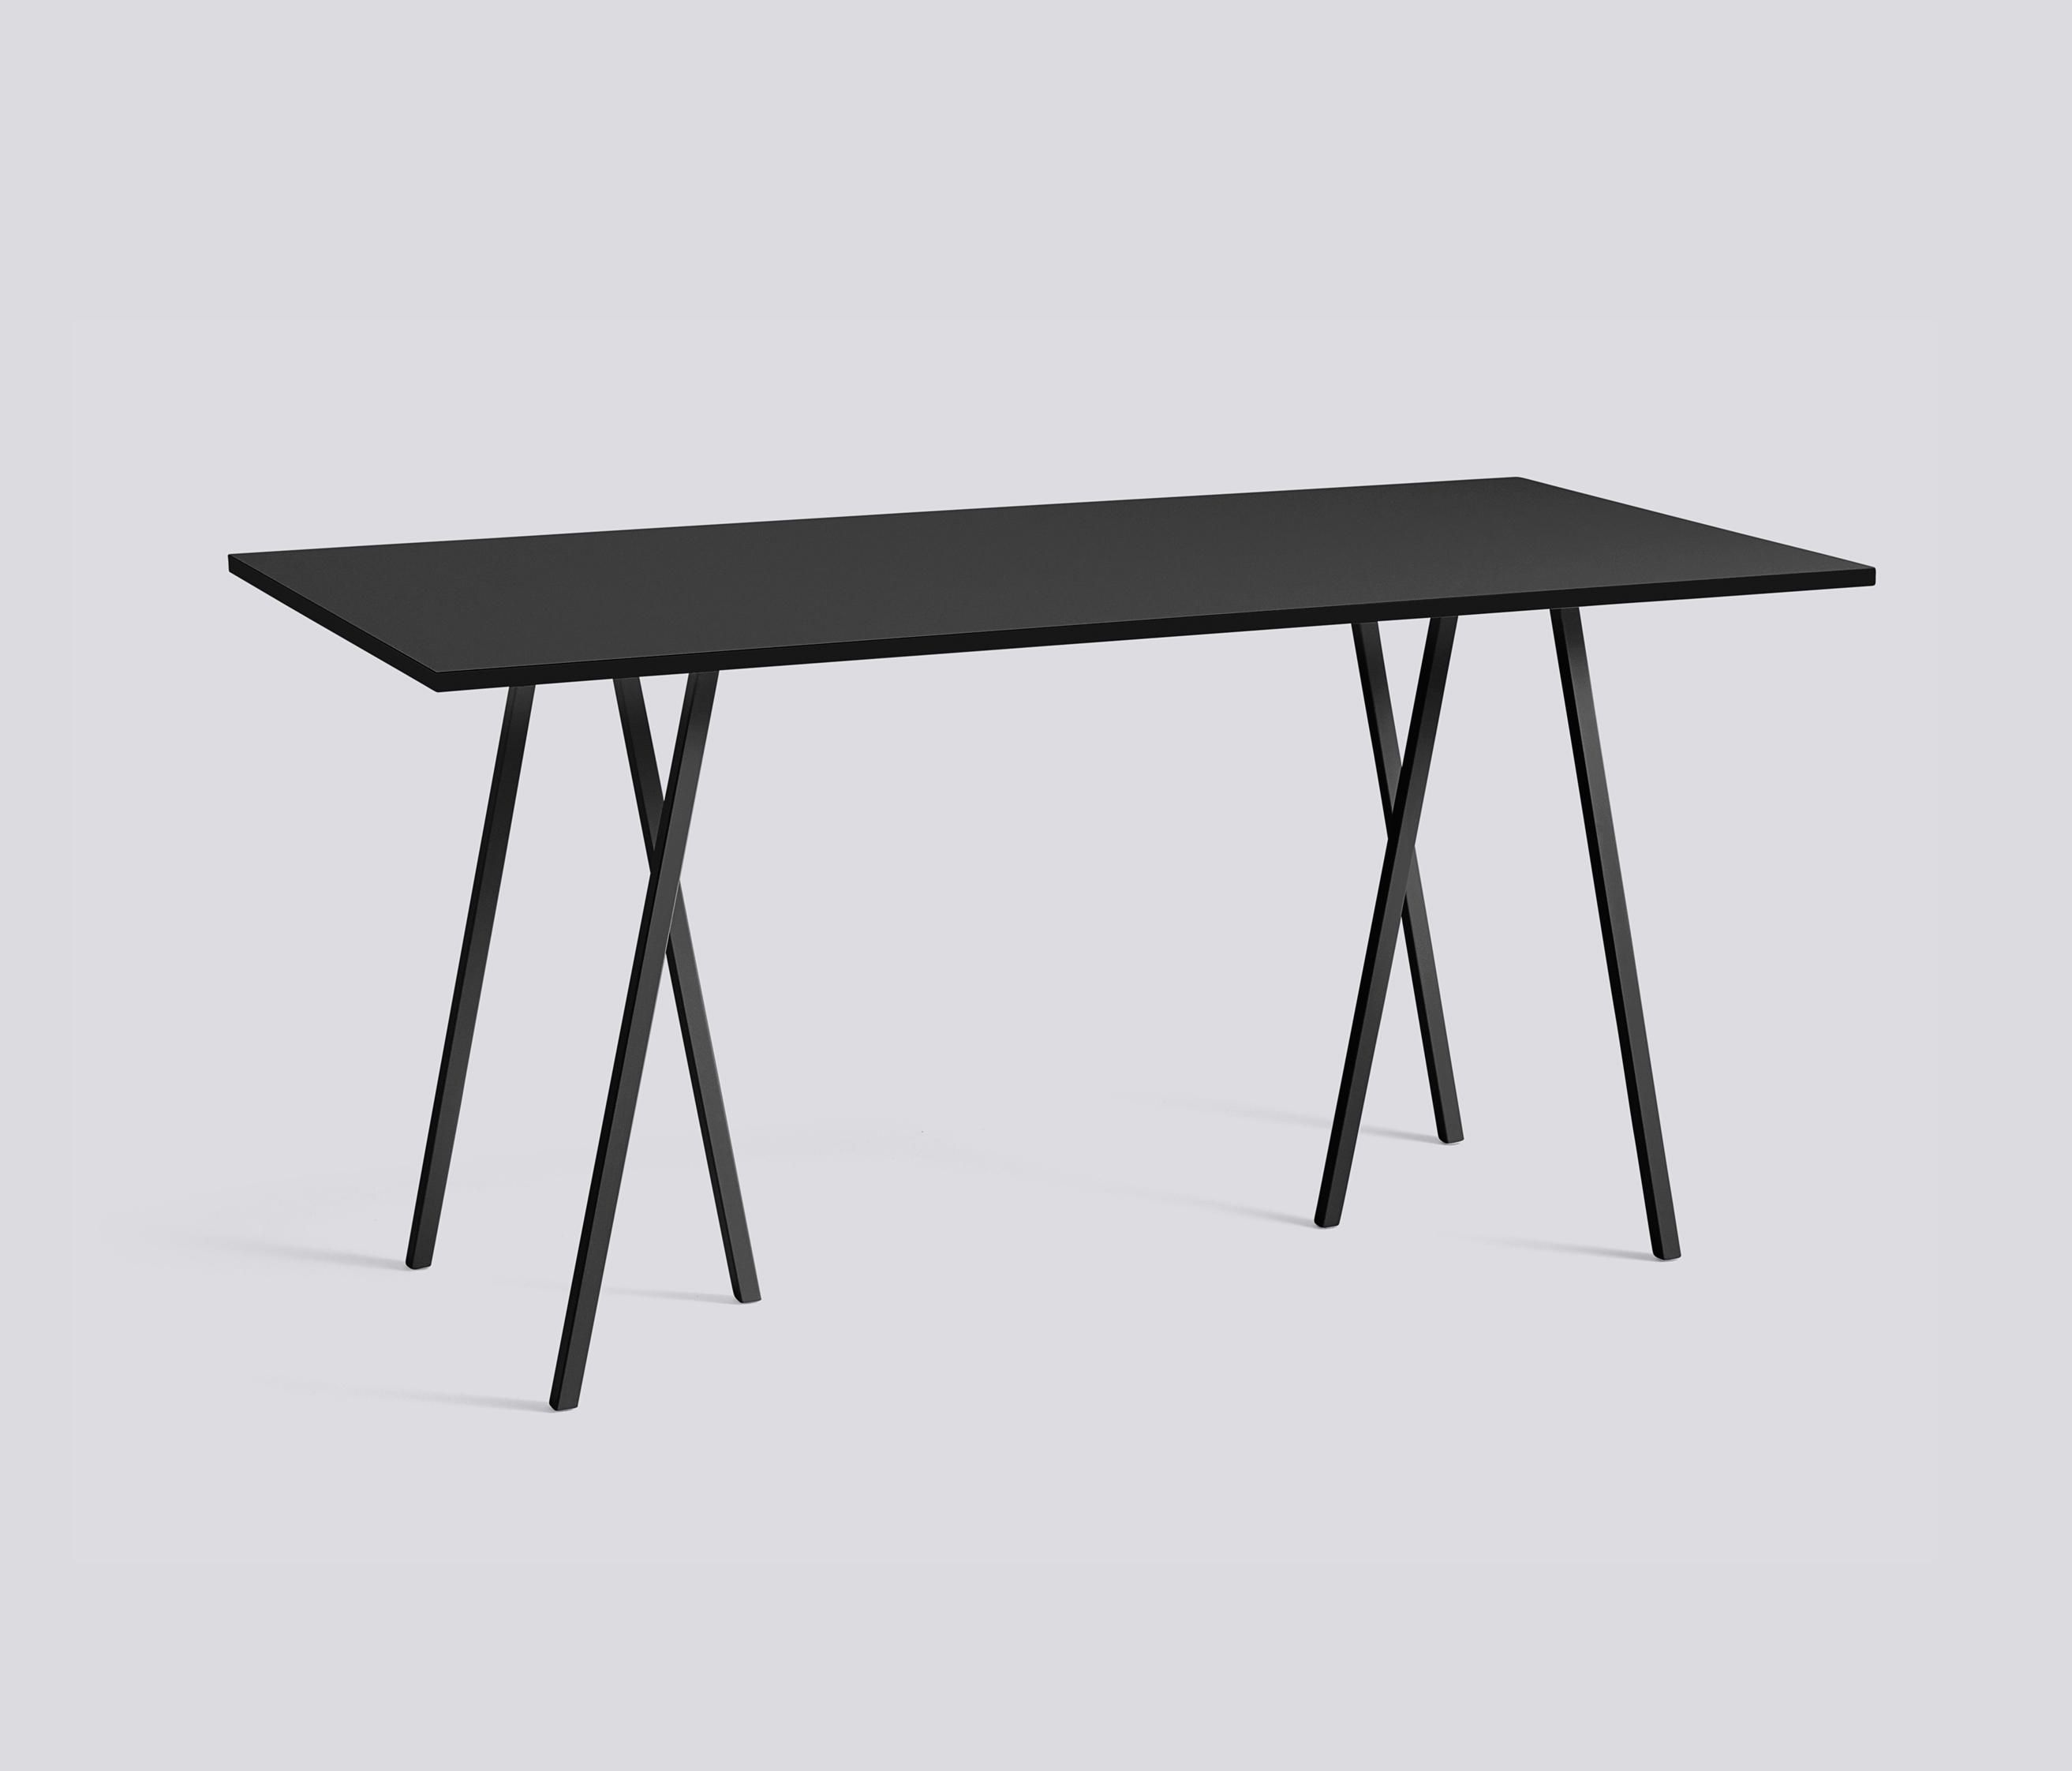 LOOP STAND HIGH TABLE 200 - Designer Bar tables from Hay ✓ all ...